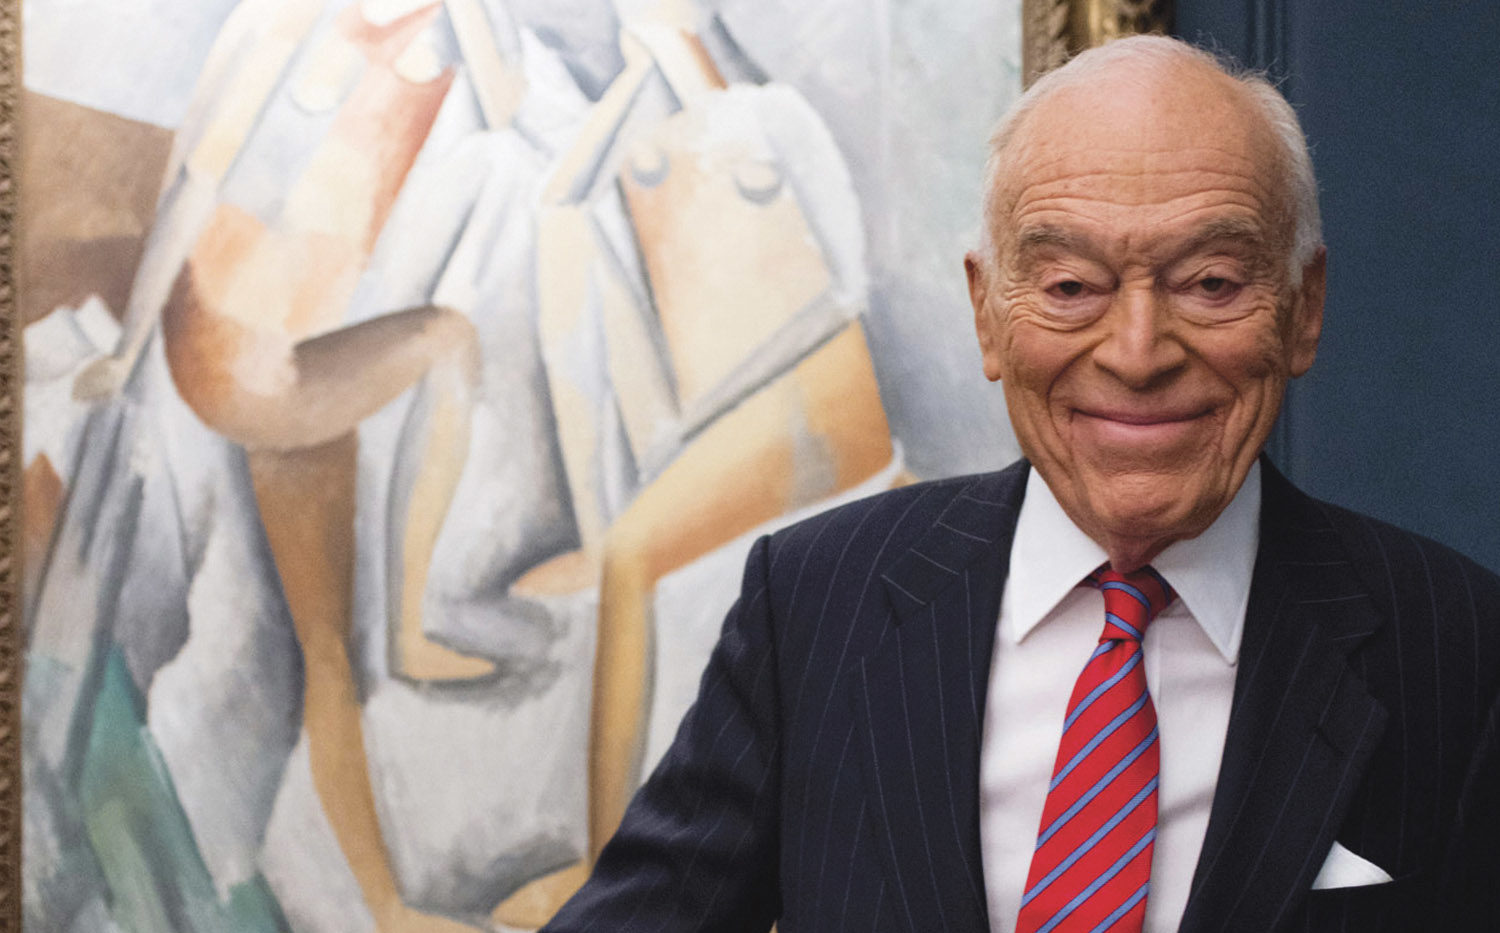 Leonard Lauder will be honored at this year's Day of Philanthropy in San Francisco, Nov. 7